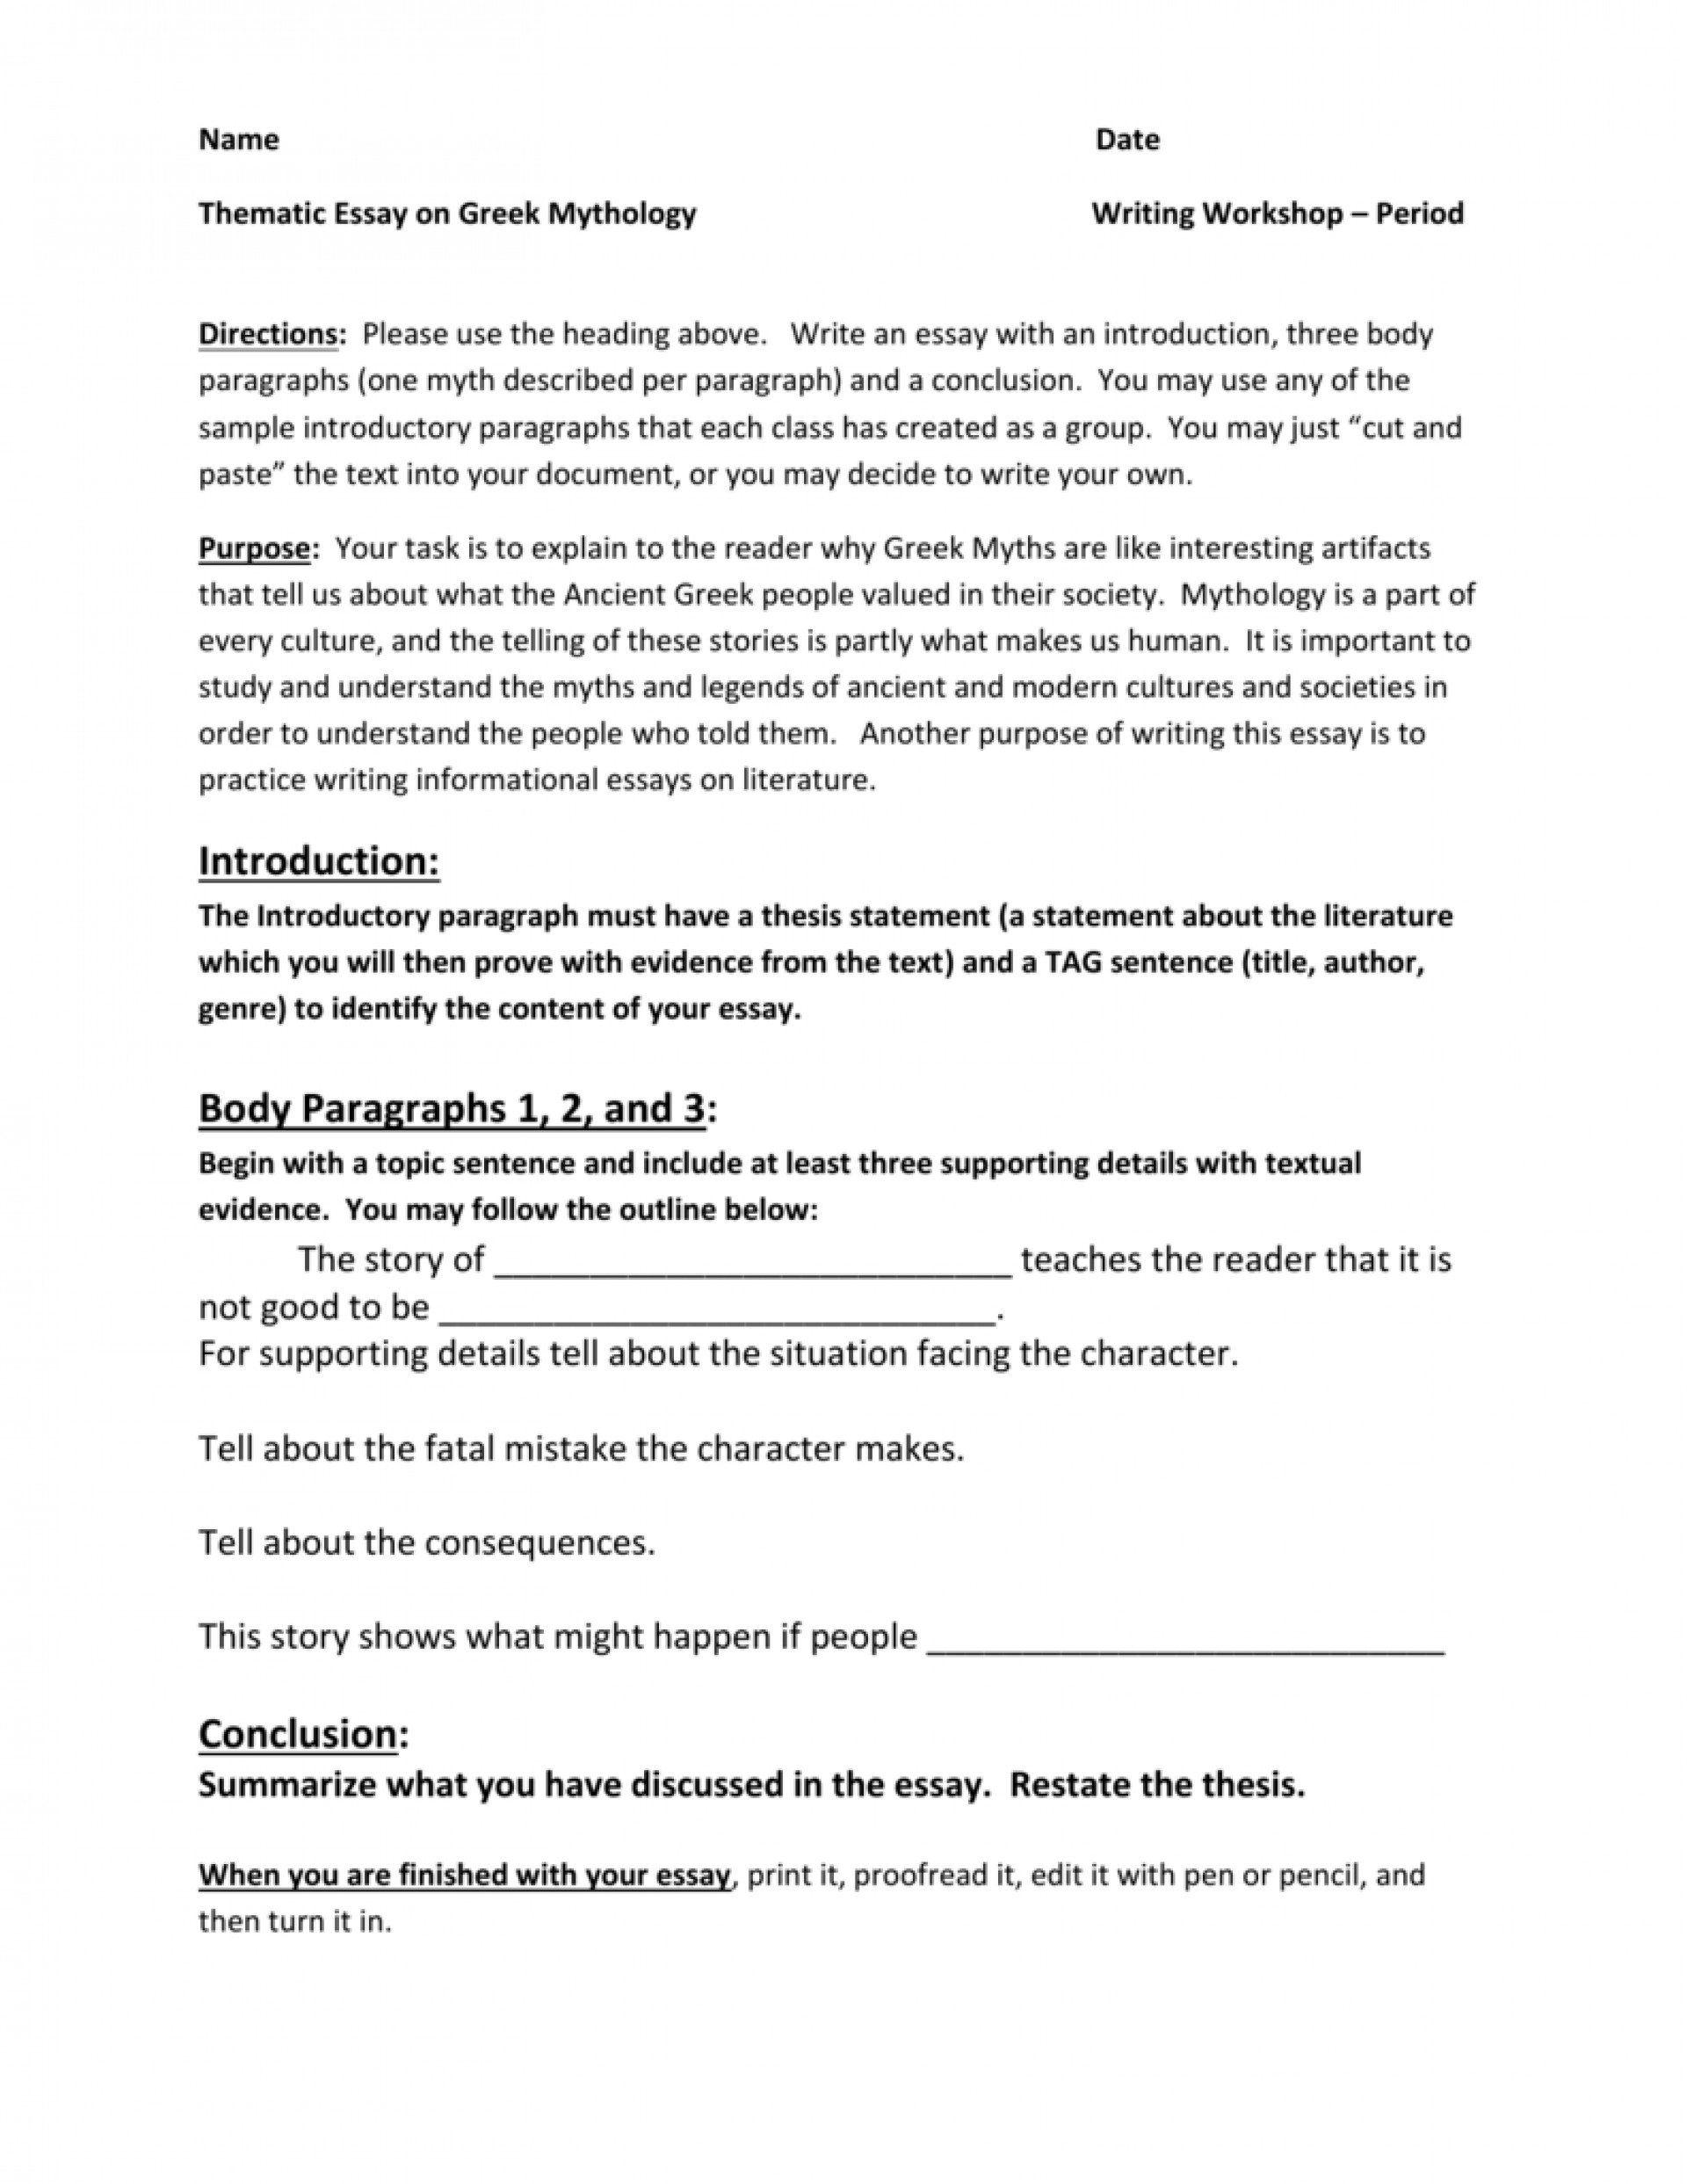 007 006654670 1 Thematic Essay Fearsome Photo Examples Rubric Analysis Template 1920